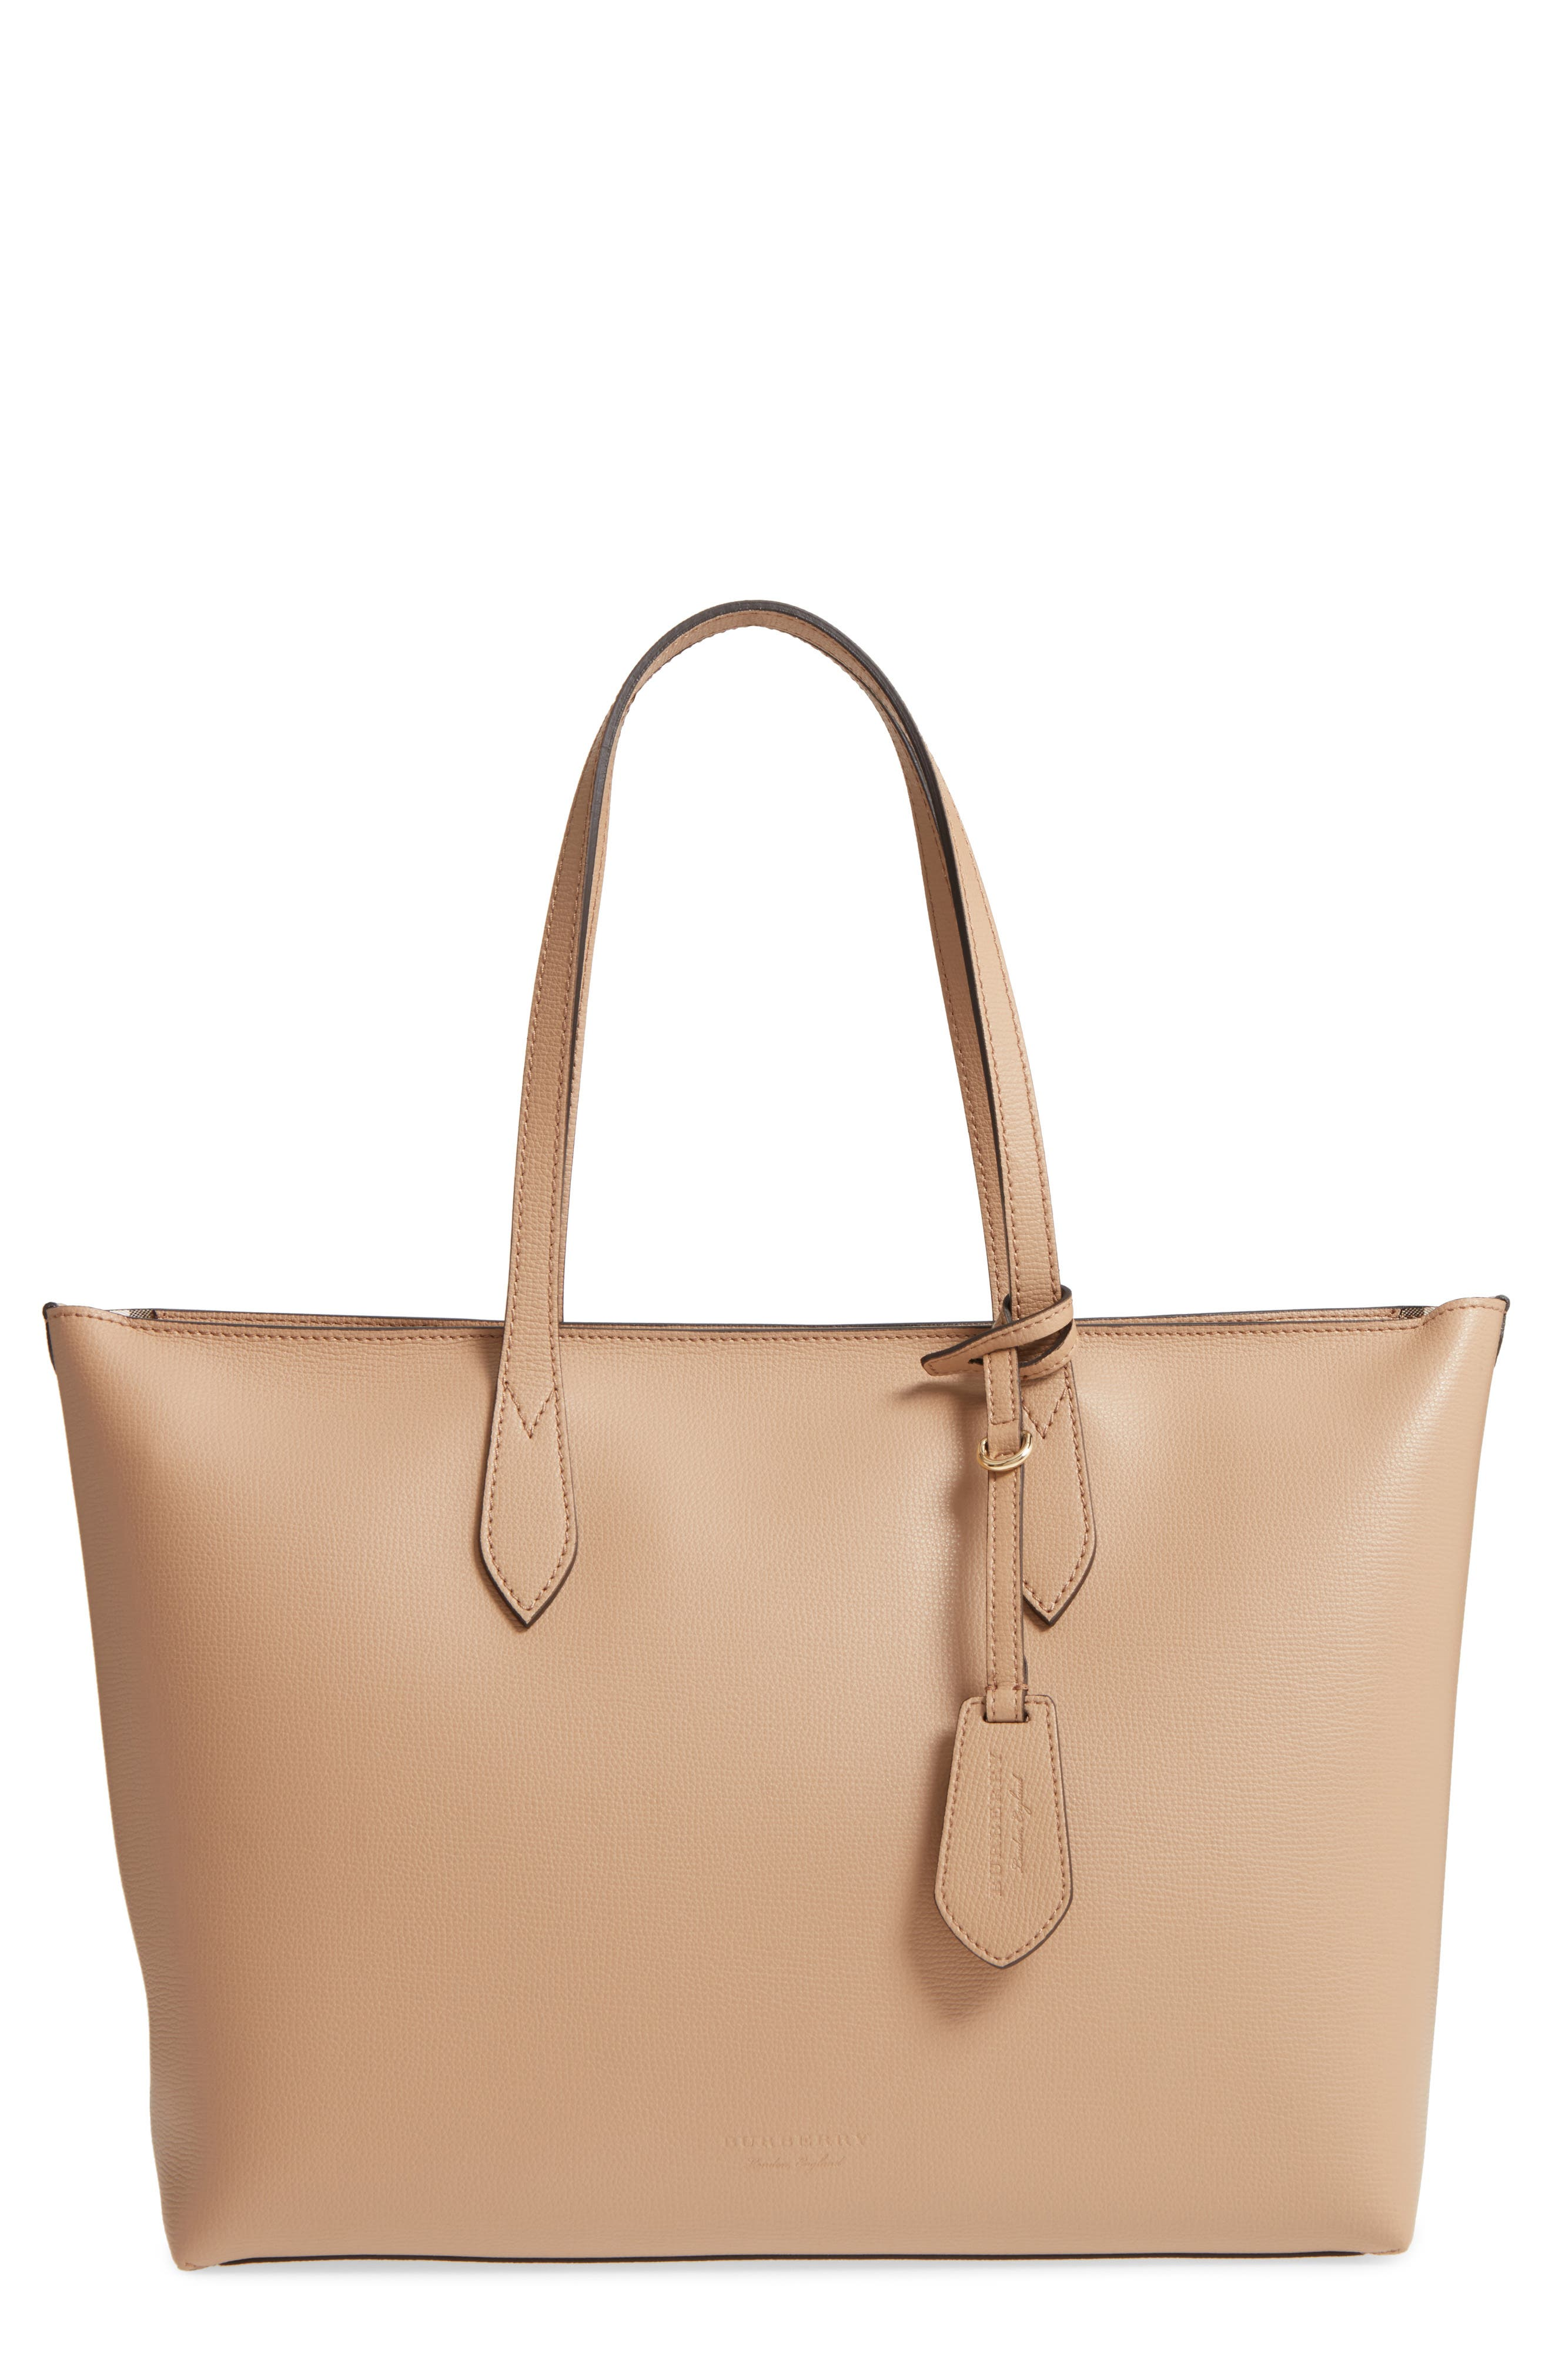 Calfskin Leather Tote,                             Main thumbnail 1, color,                             267